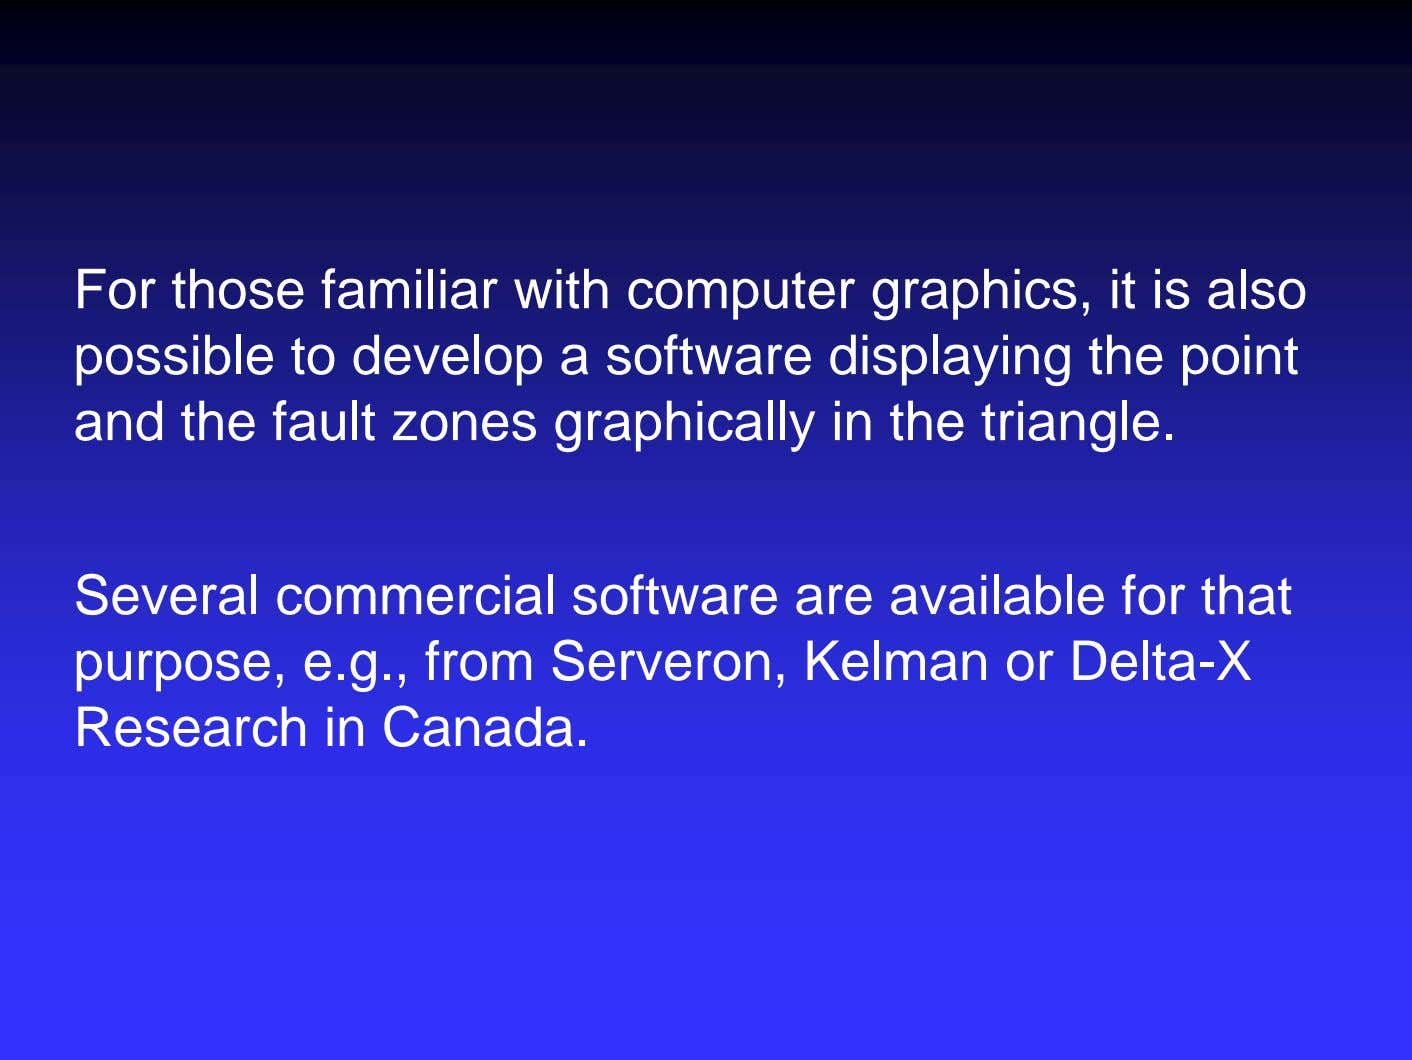 For those familiar with computer graphics, it is also possible to develop a software displaying